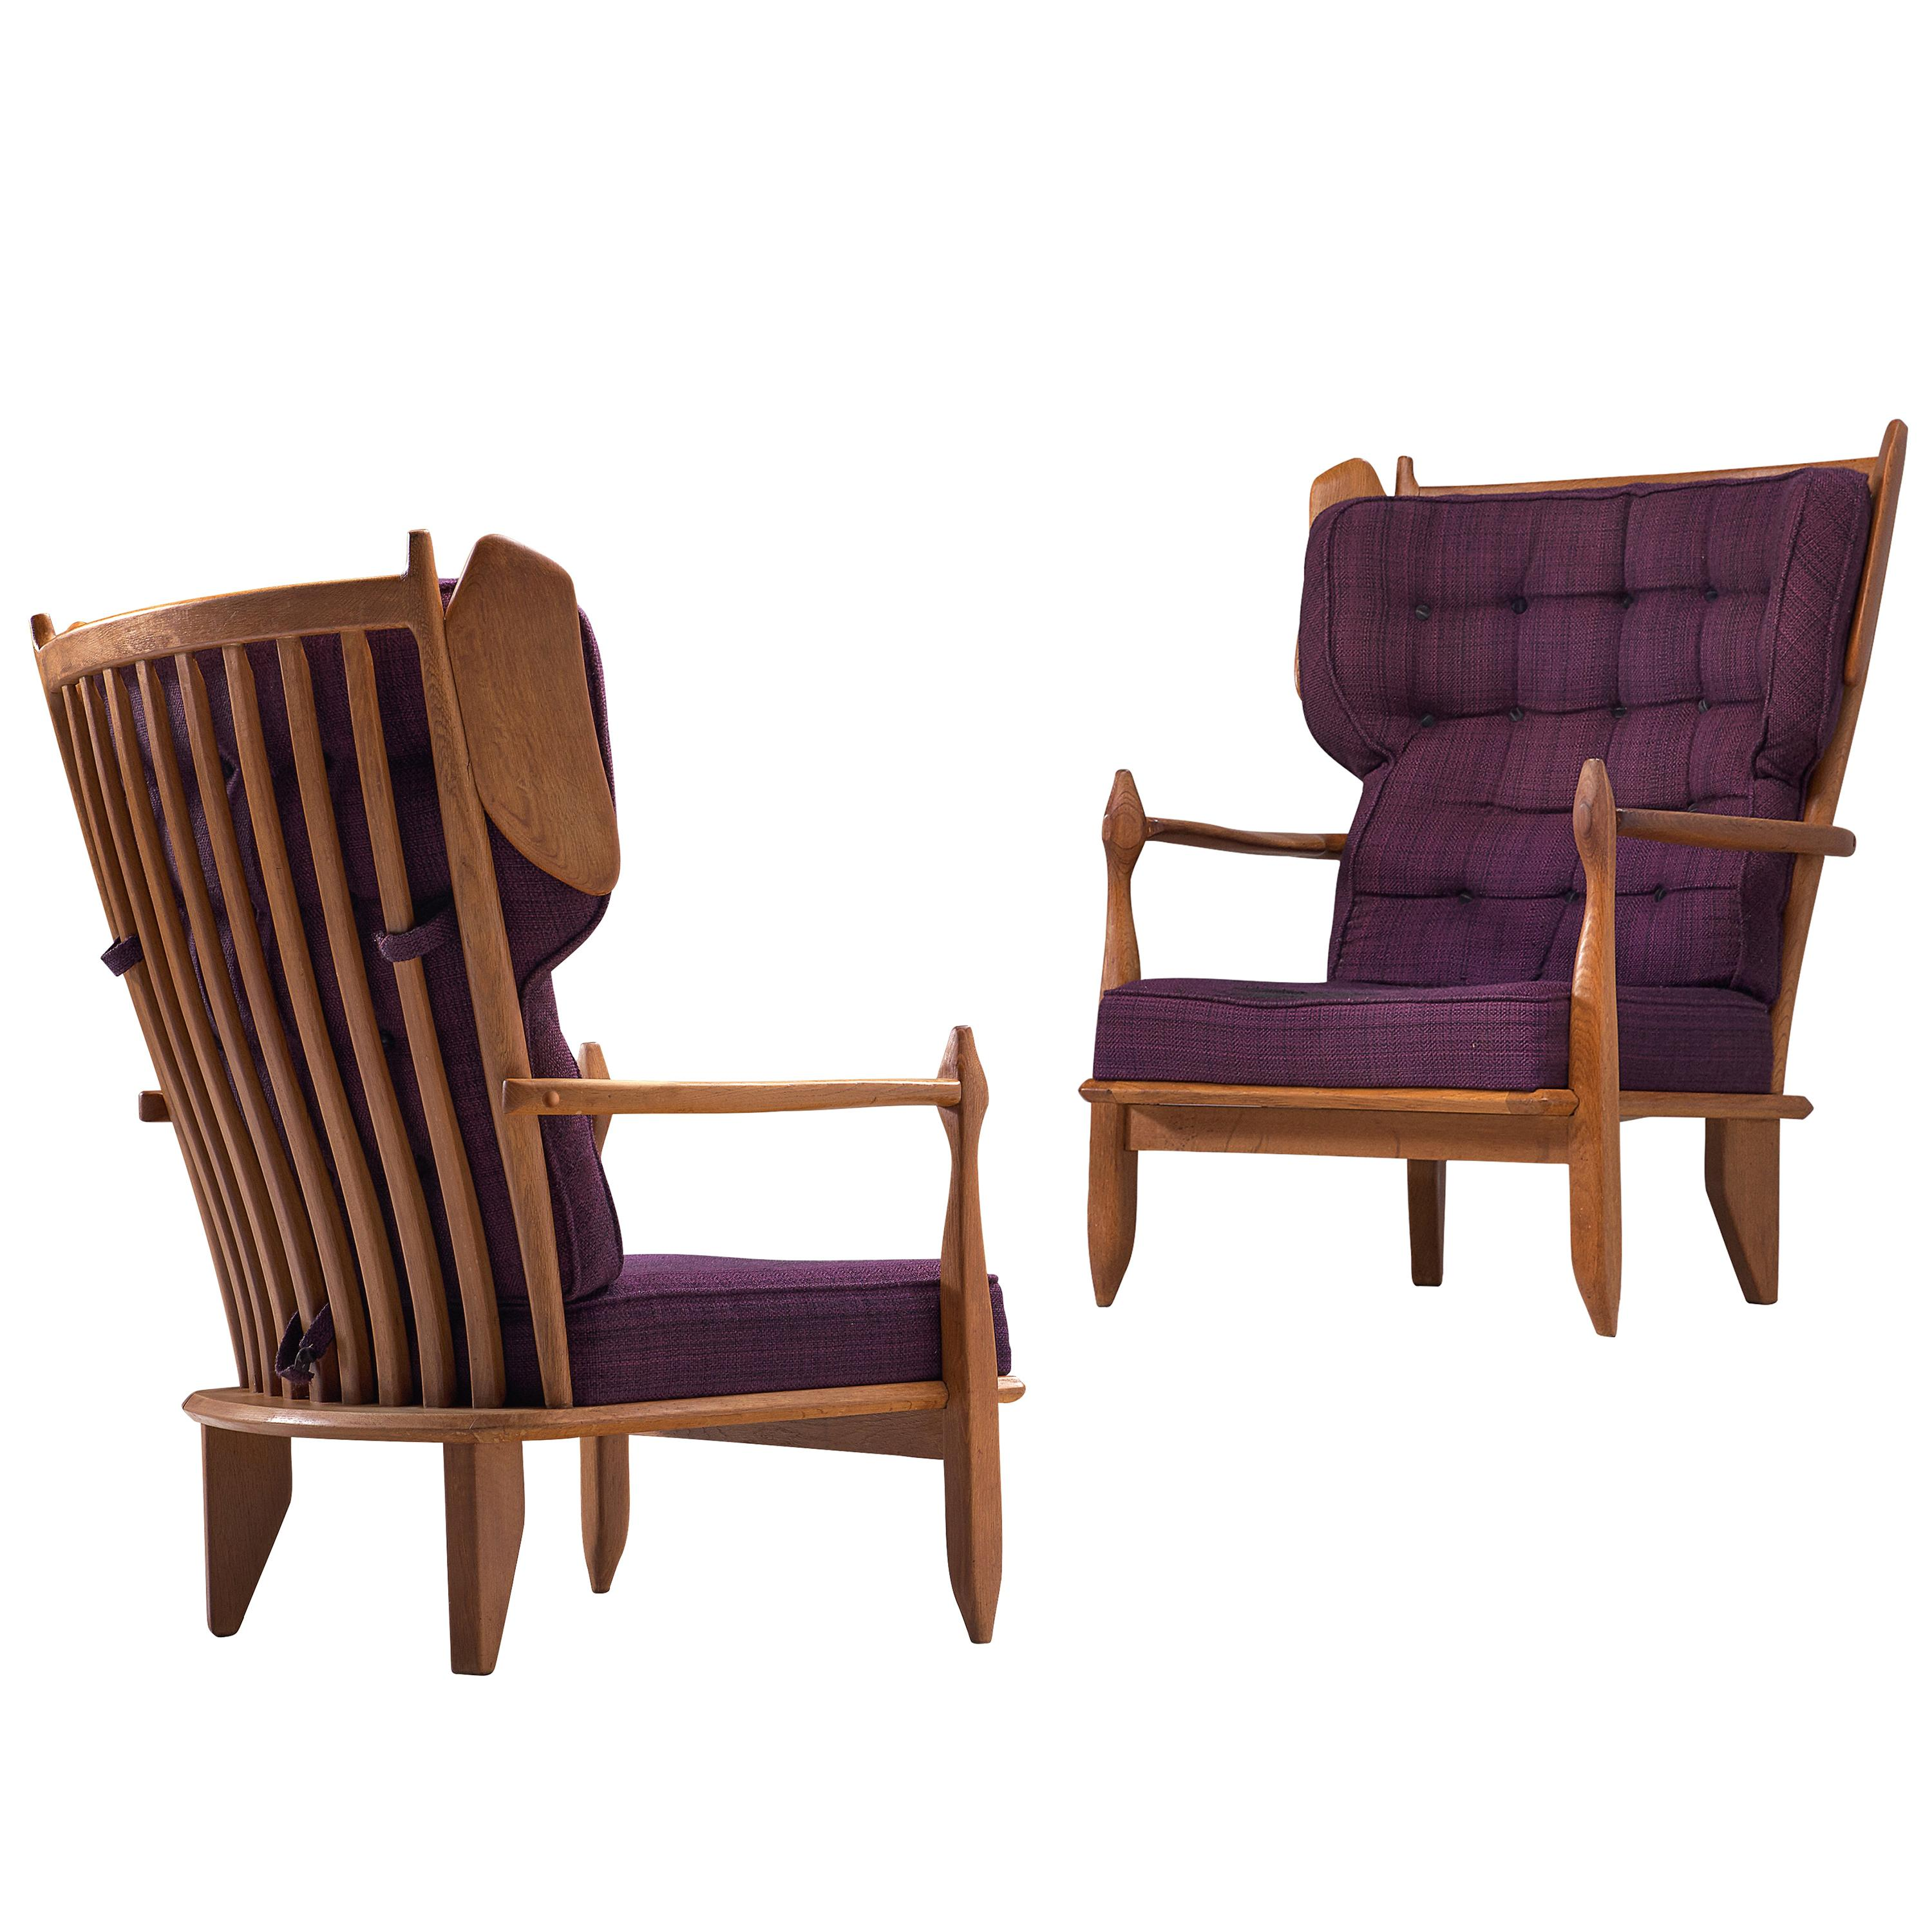 Guillerme et Chambron Wingback Lounge Chairs in Oak